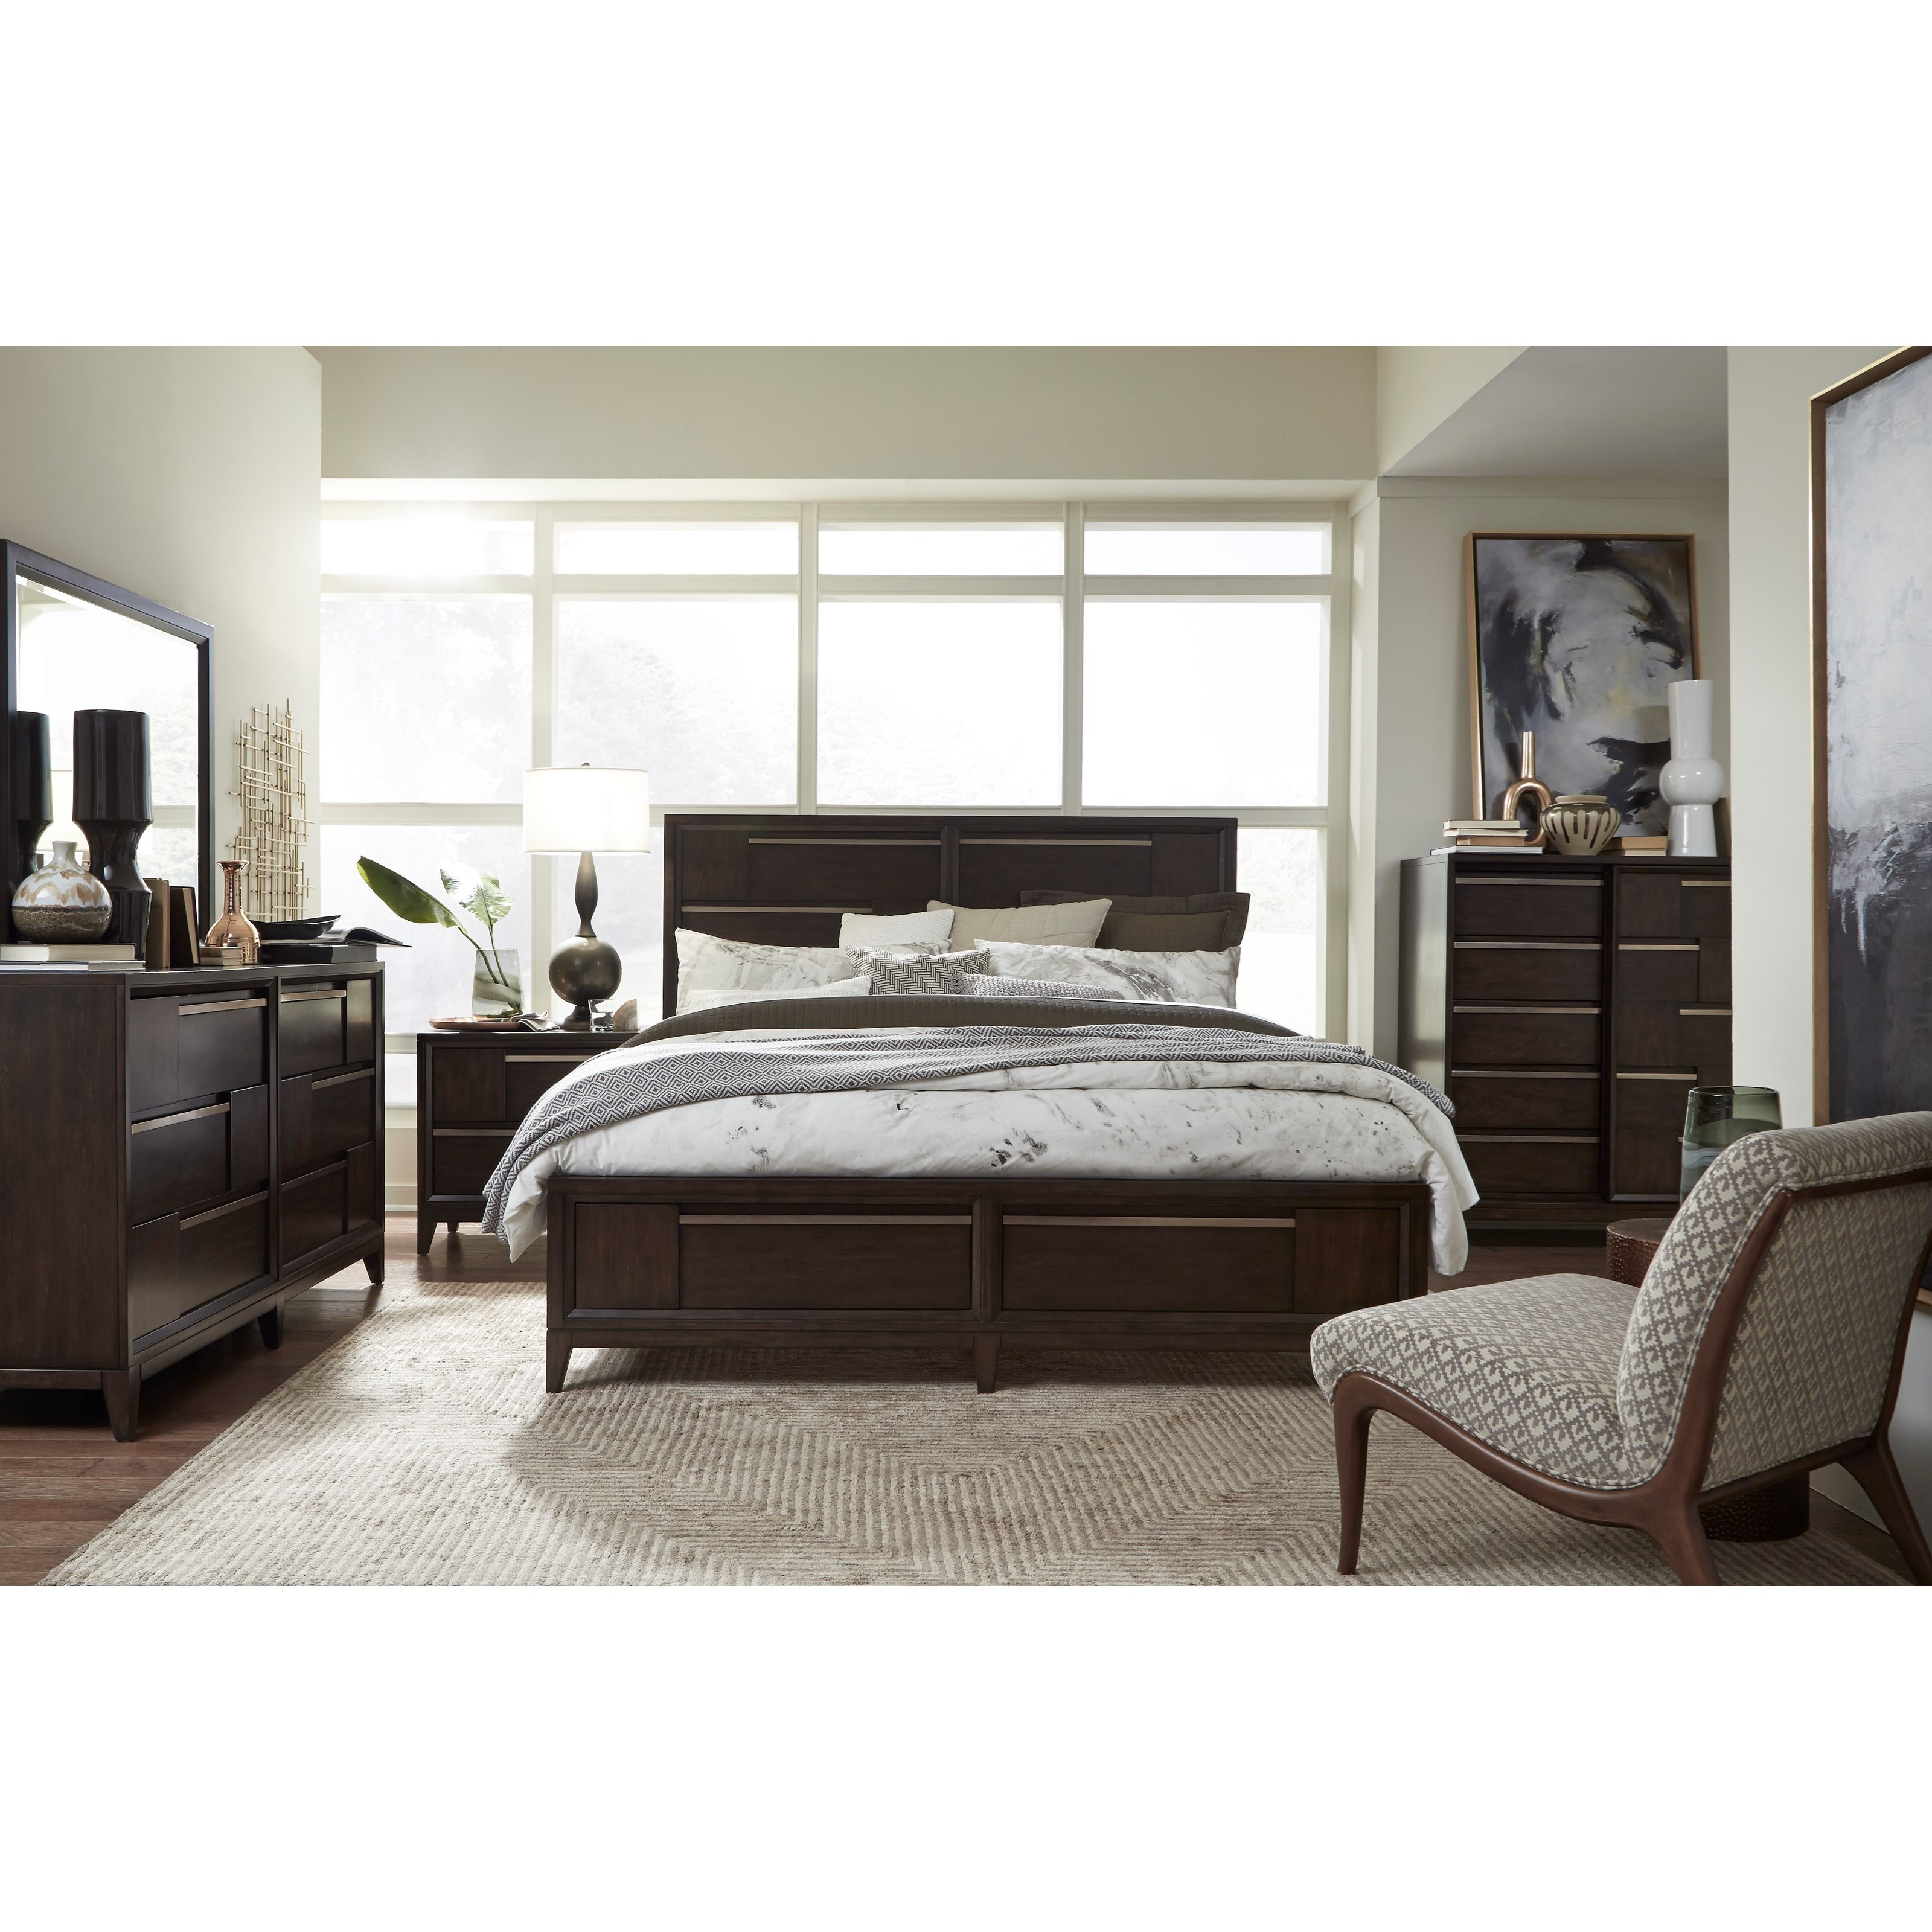 Modern Geometry Queen Bedroom Group by Magnussen Home at Suburban Furniture